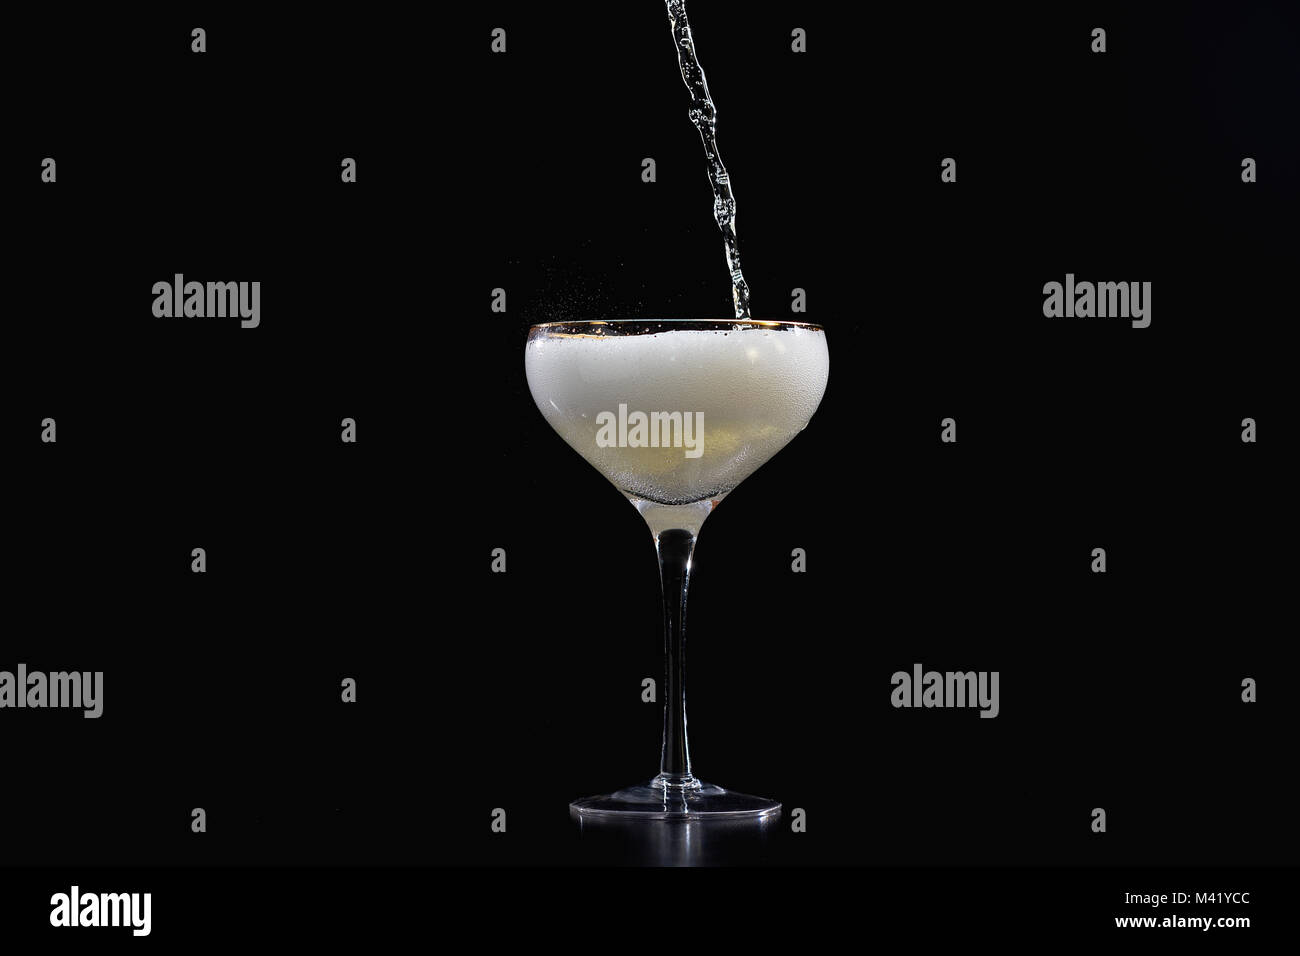 Pouring champagne sparkling wine into glass with black background - Stock Image